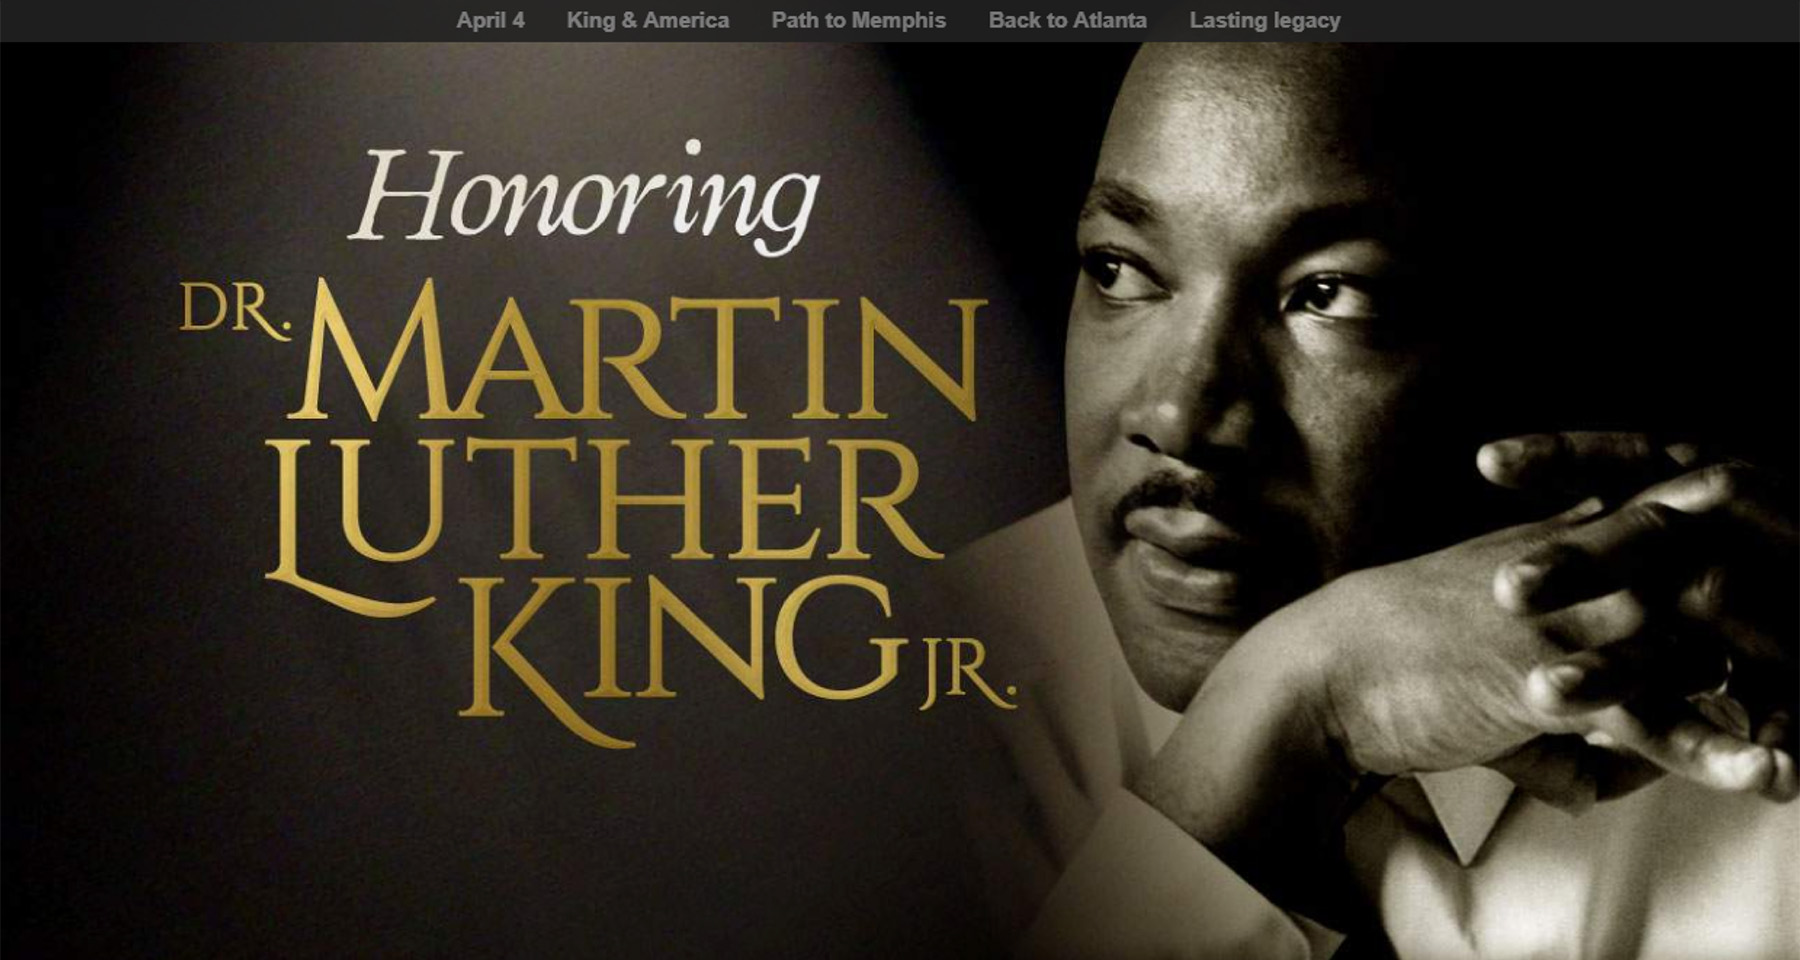 Atlanta Journal Constitution honours MLK, engages audience with integrated content effort